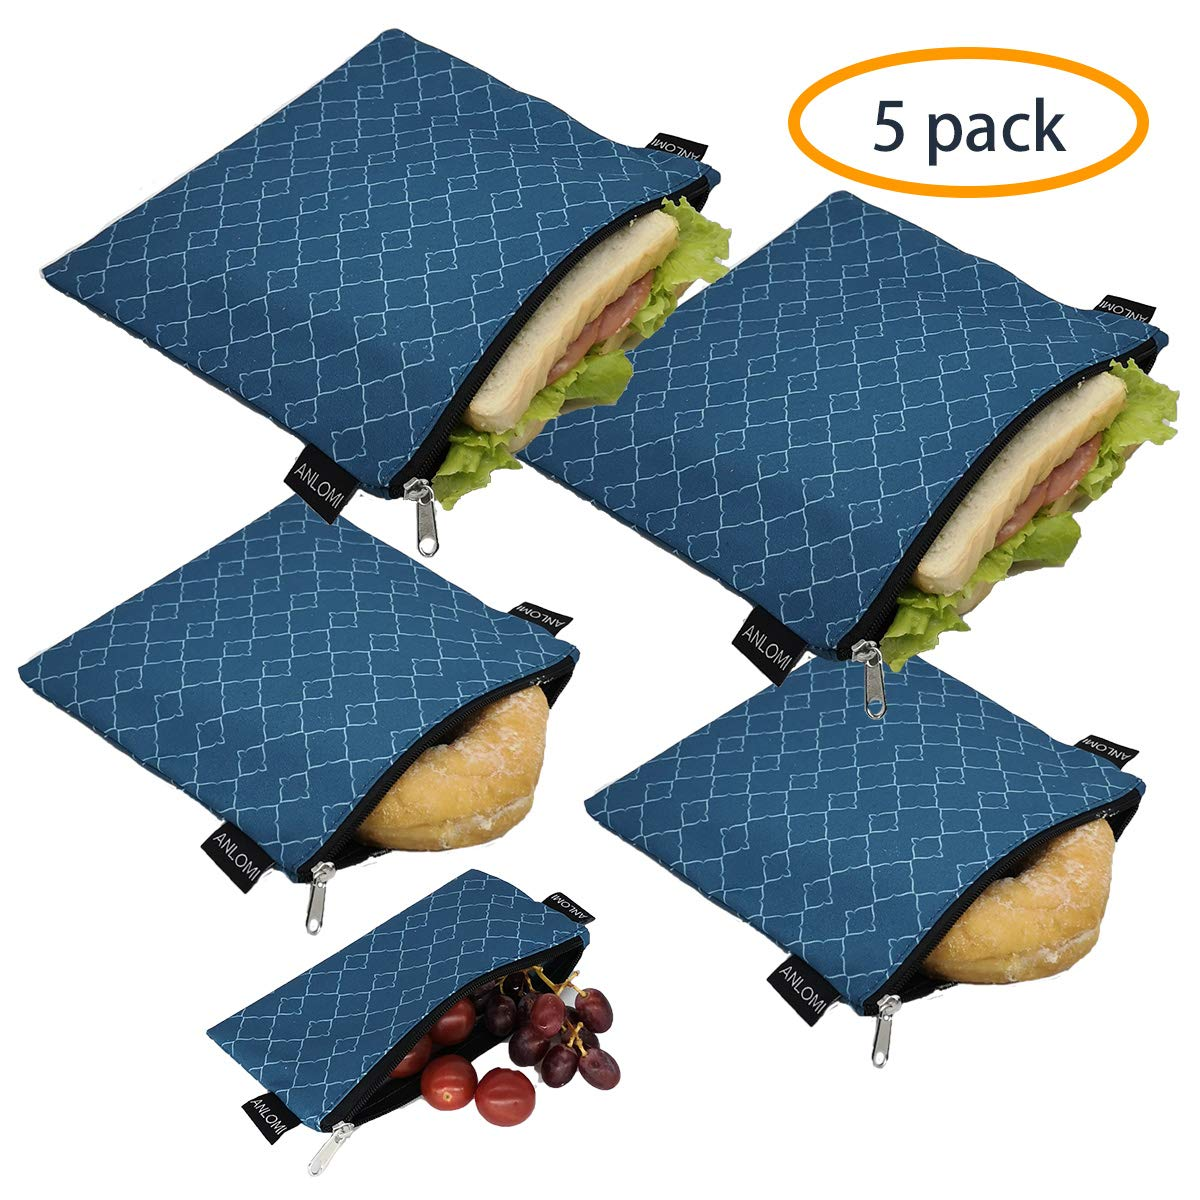 Reusable Sandwich Bags Snack Bags - Set of 5 Pack, Dishwasher Safe Lunch Bags with Zipper, Eco Friendly Food Wraps, BPA-Free. (PeacockBlue) (affiliate link)